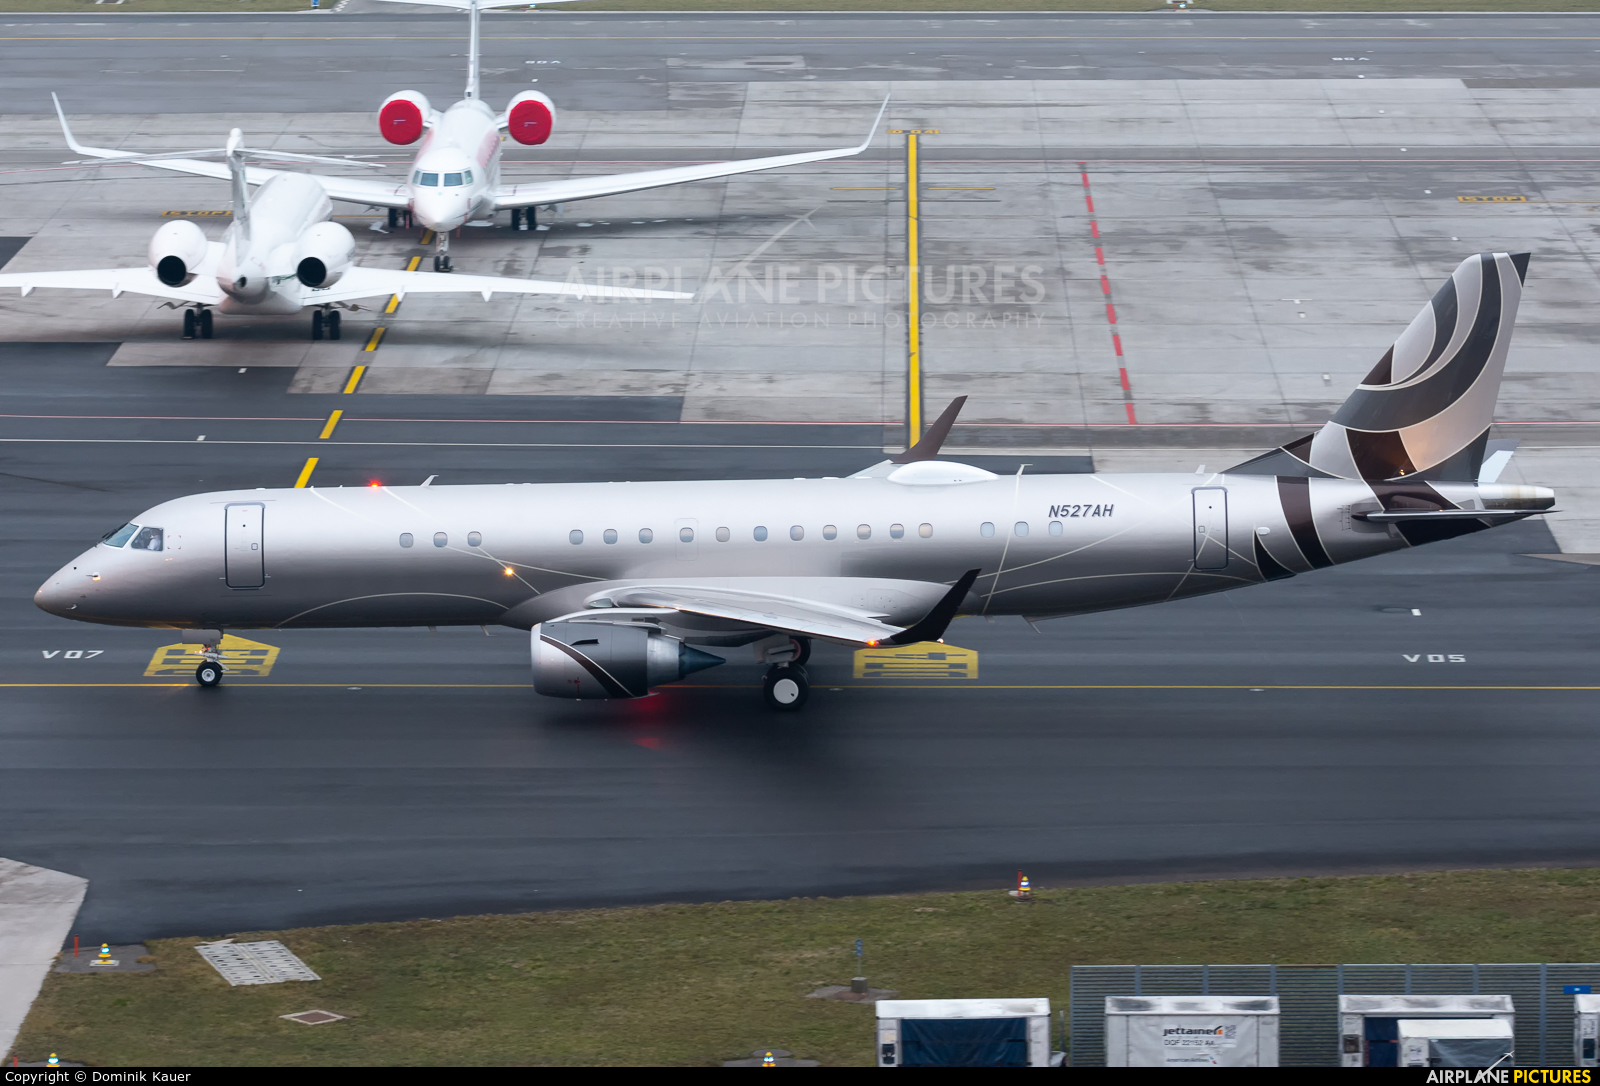 Lineage Asset Company N527AH aircraft at Zurich